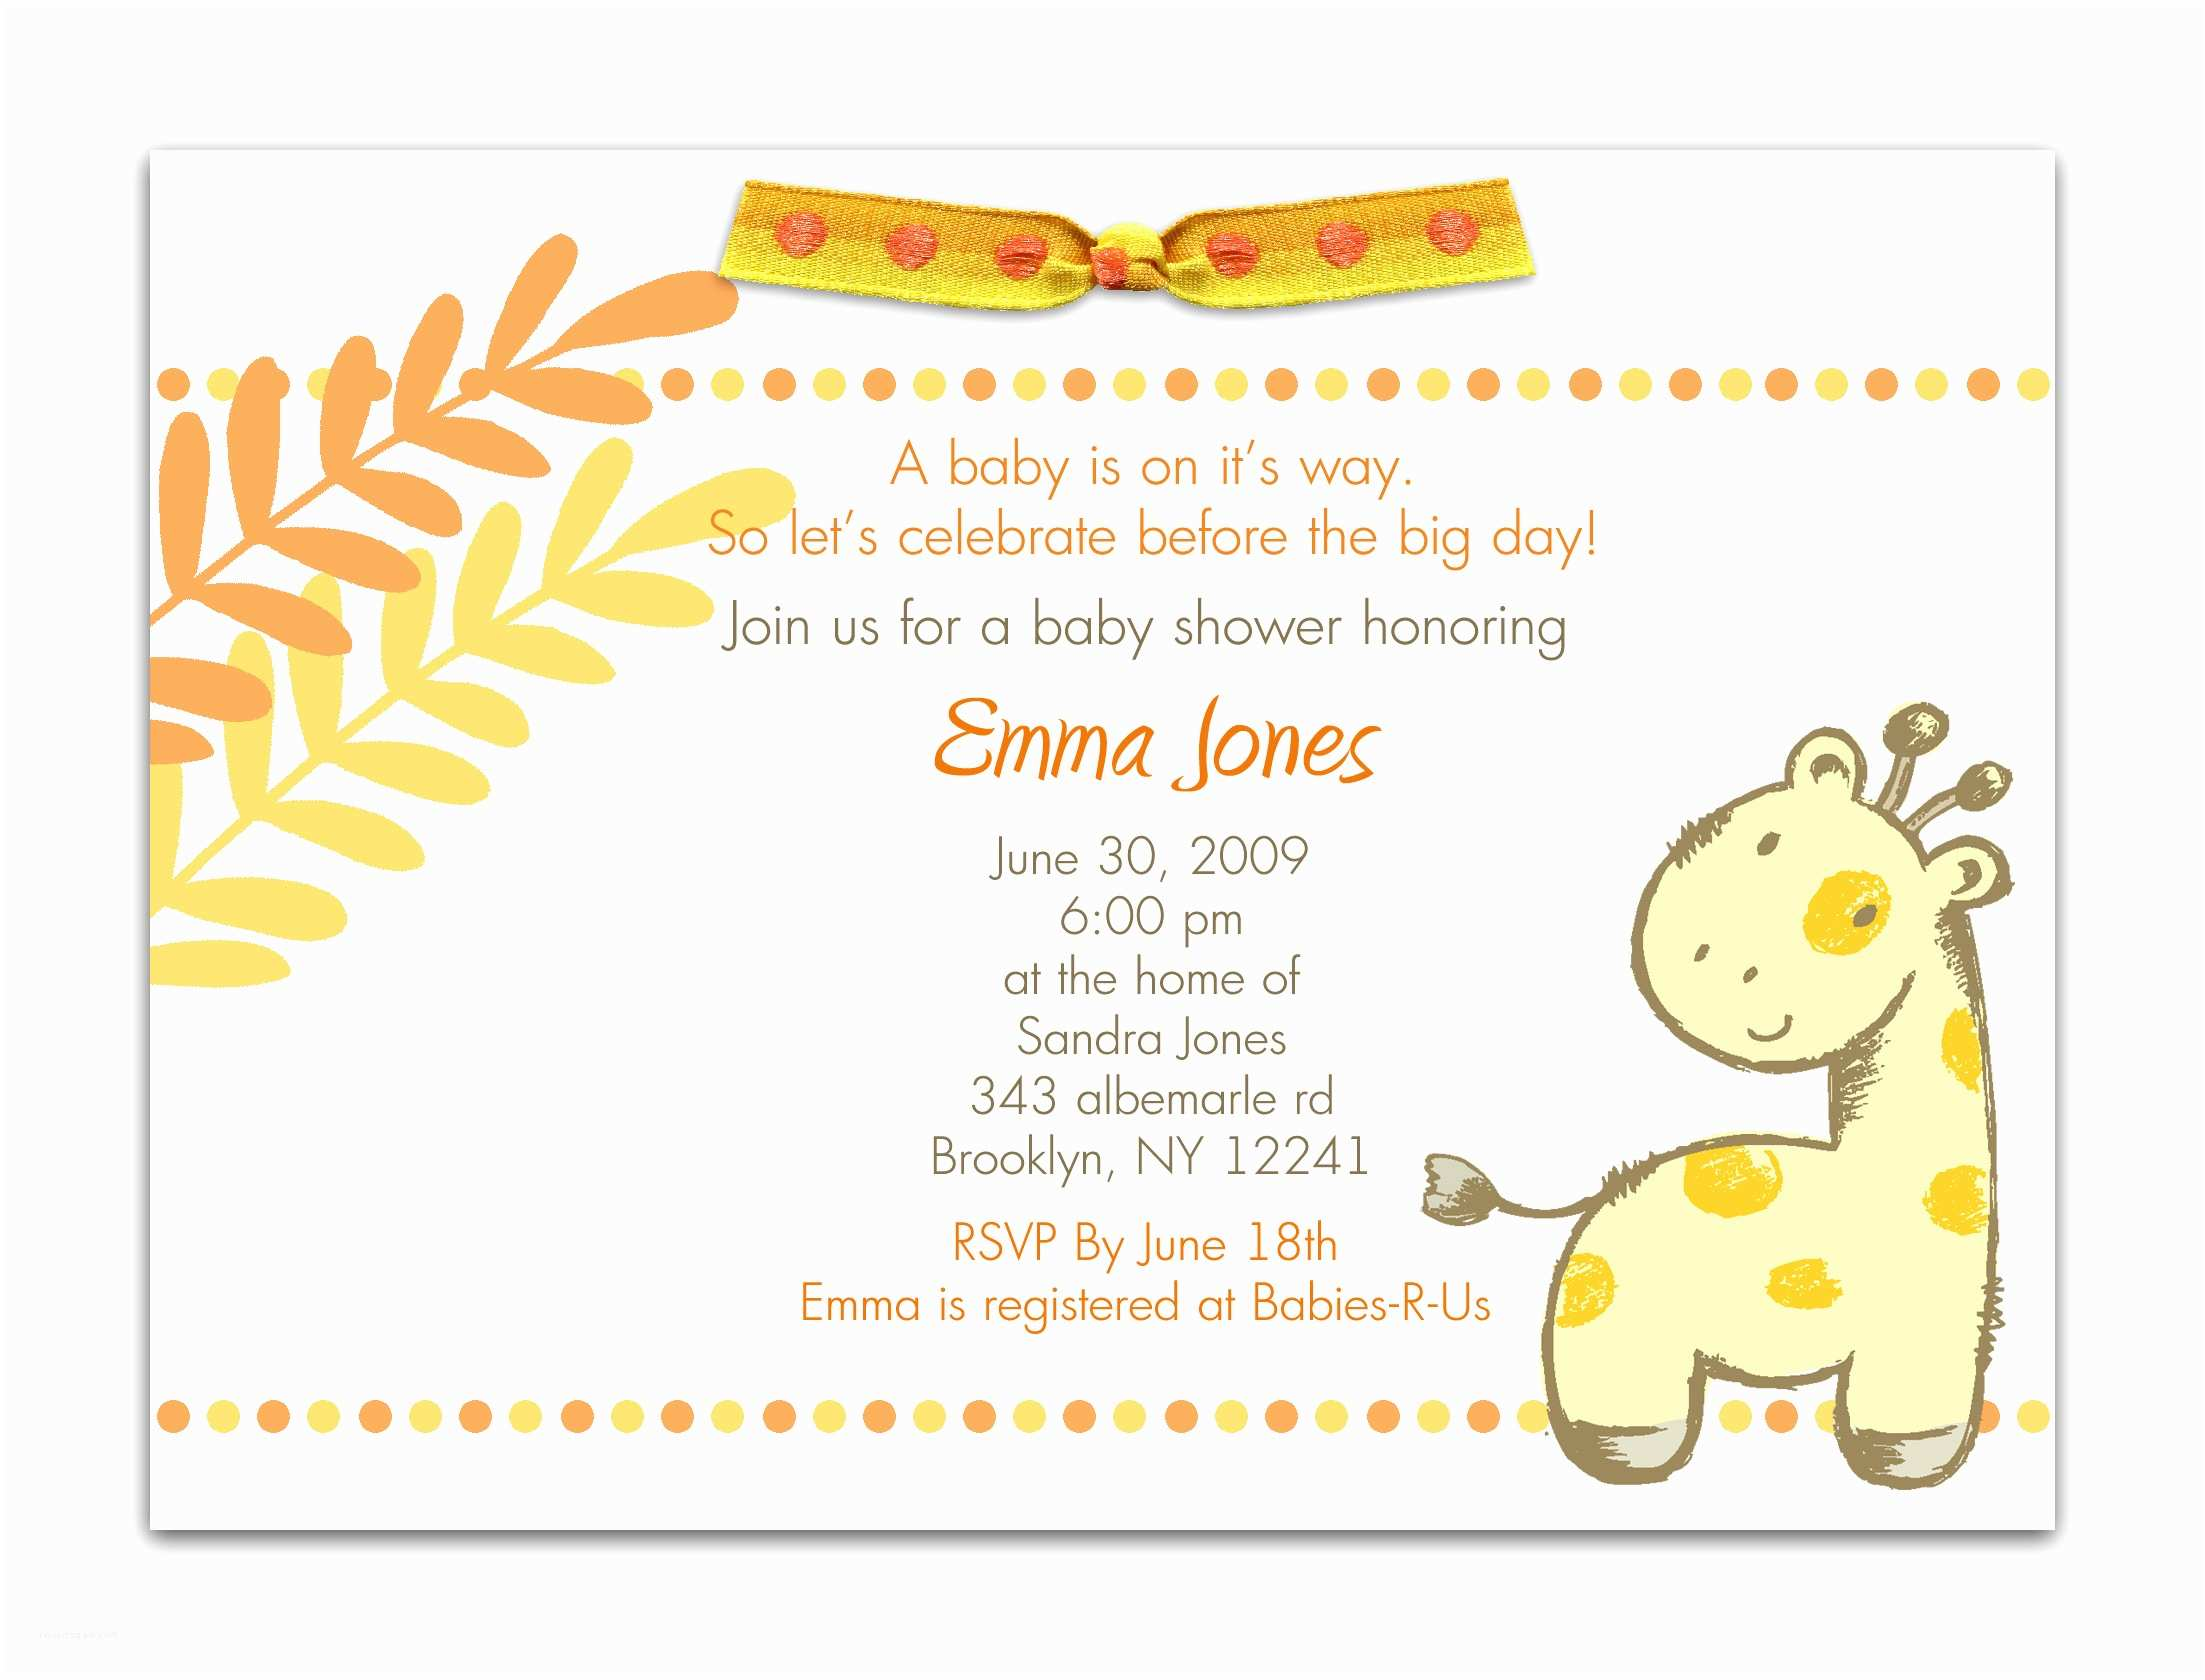 Hobby Lobby Baby Shower Invitations Inspirational Esie Baby Shower Invitations Template